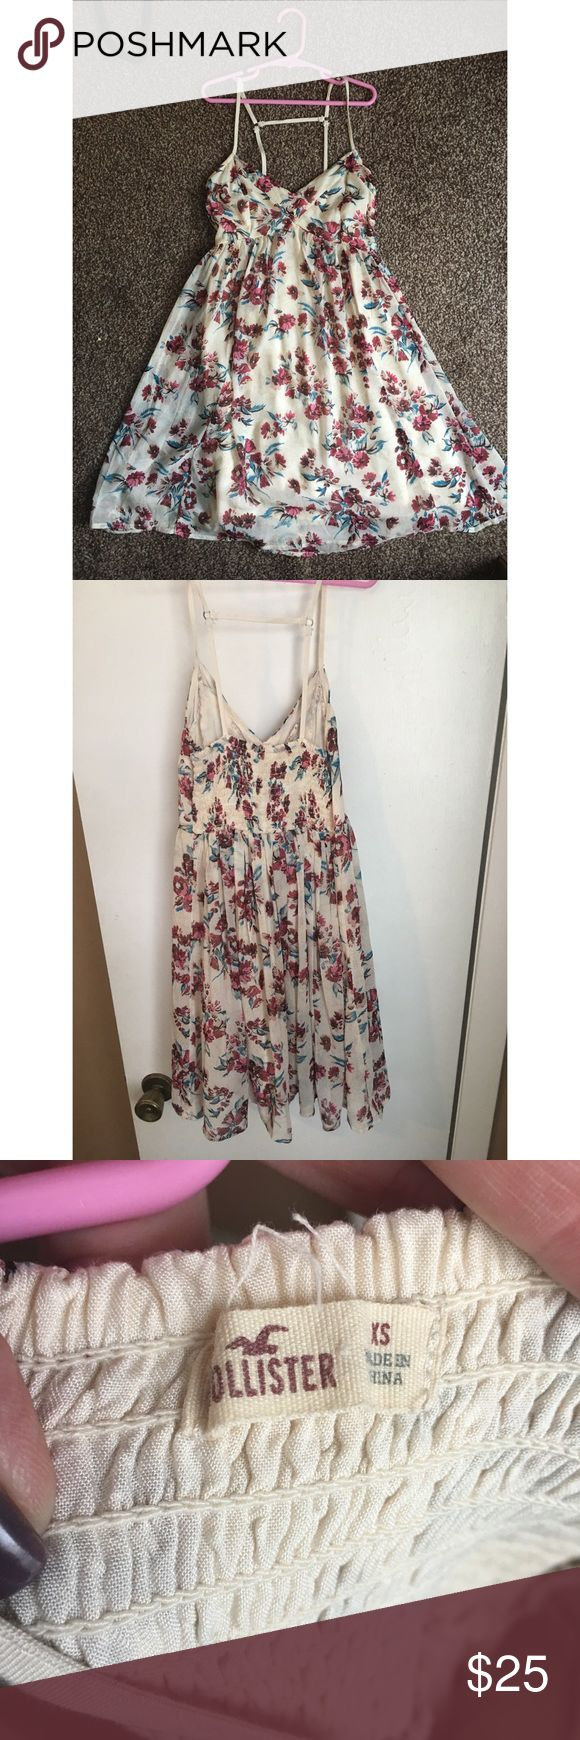 Hollister Spagetti Strap Dress Darling hollister summer dress!! Cute floral pattern, fully lined with super cute strap detail! Size XS Hollister Dresses Mini